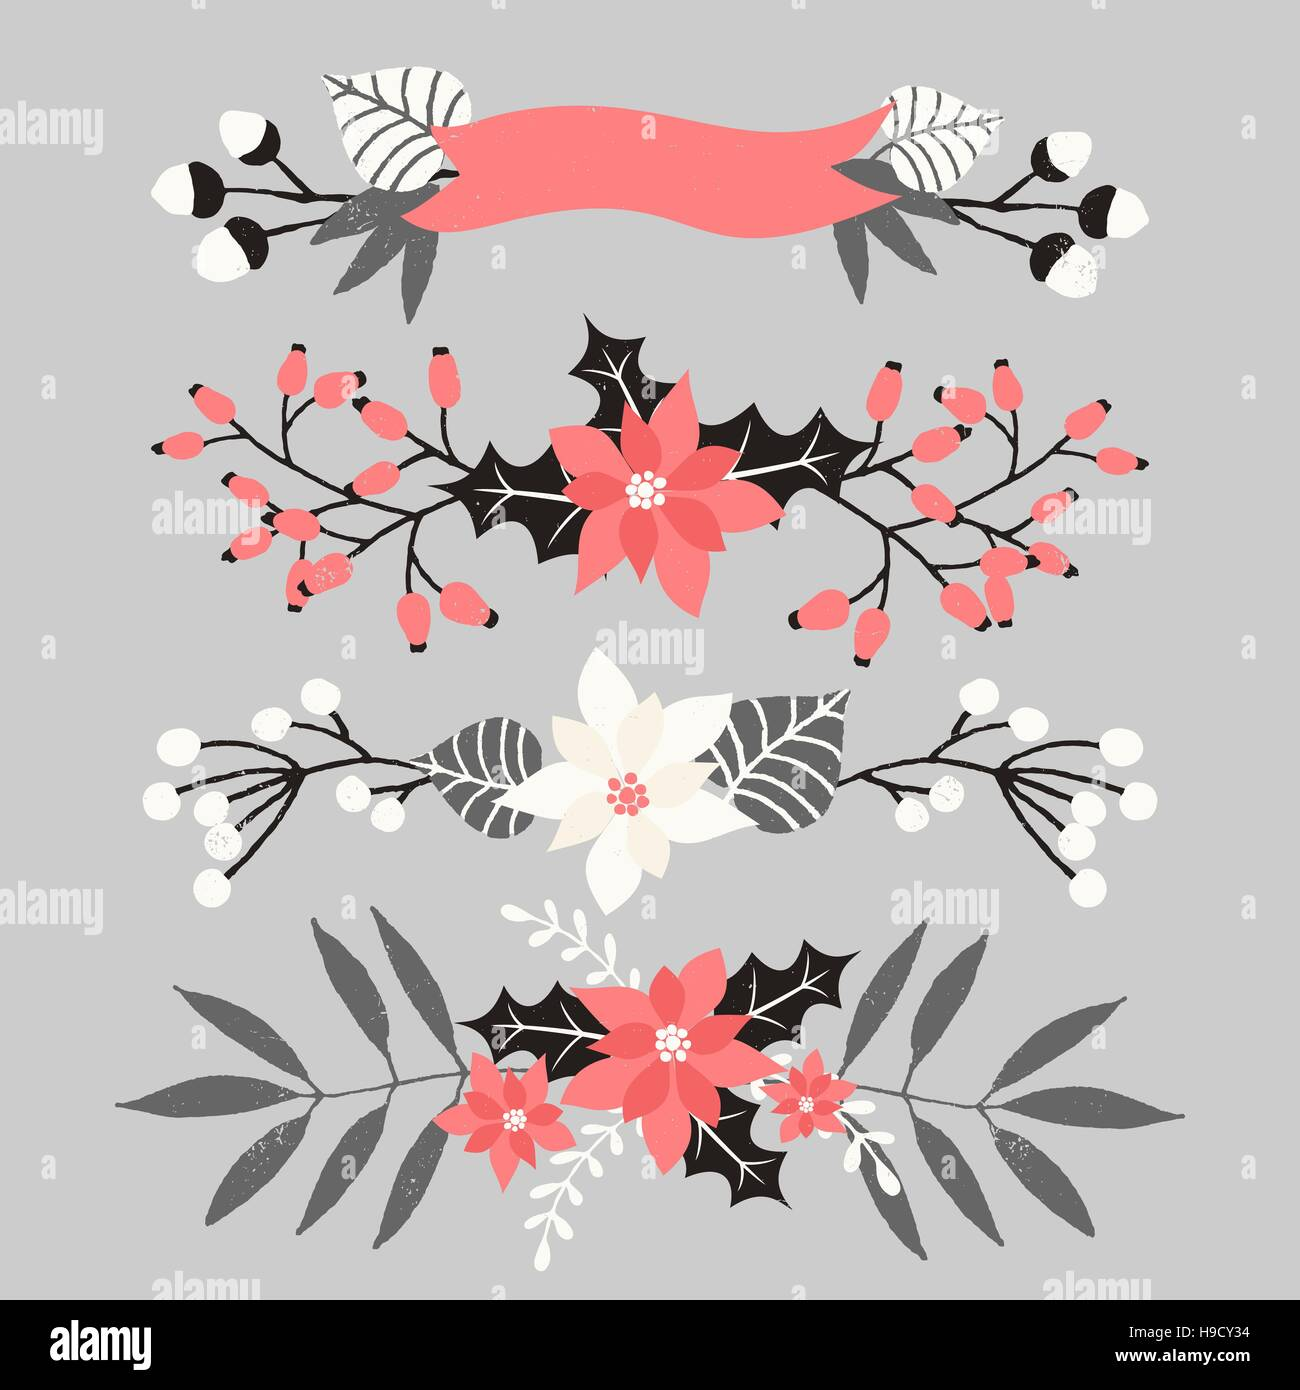 A set of Christmas floral arrangements in white, red, gray and black ...